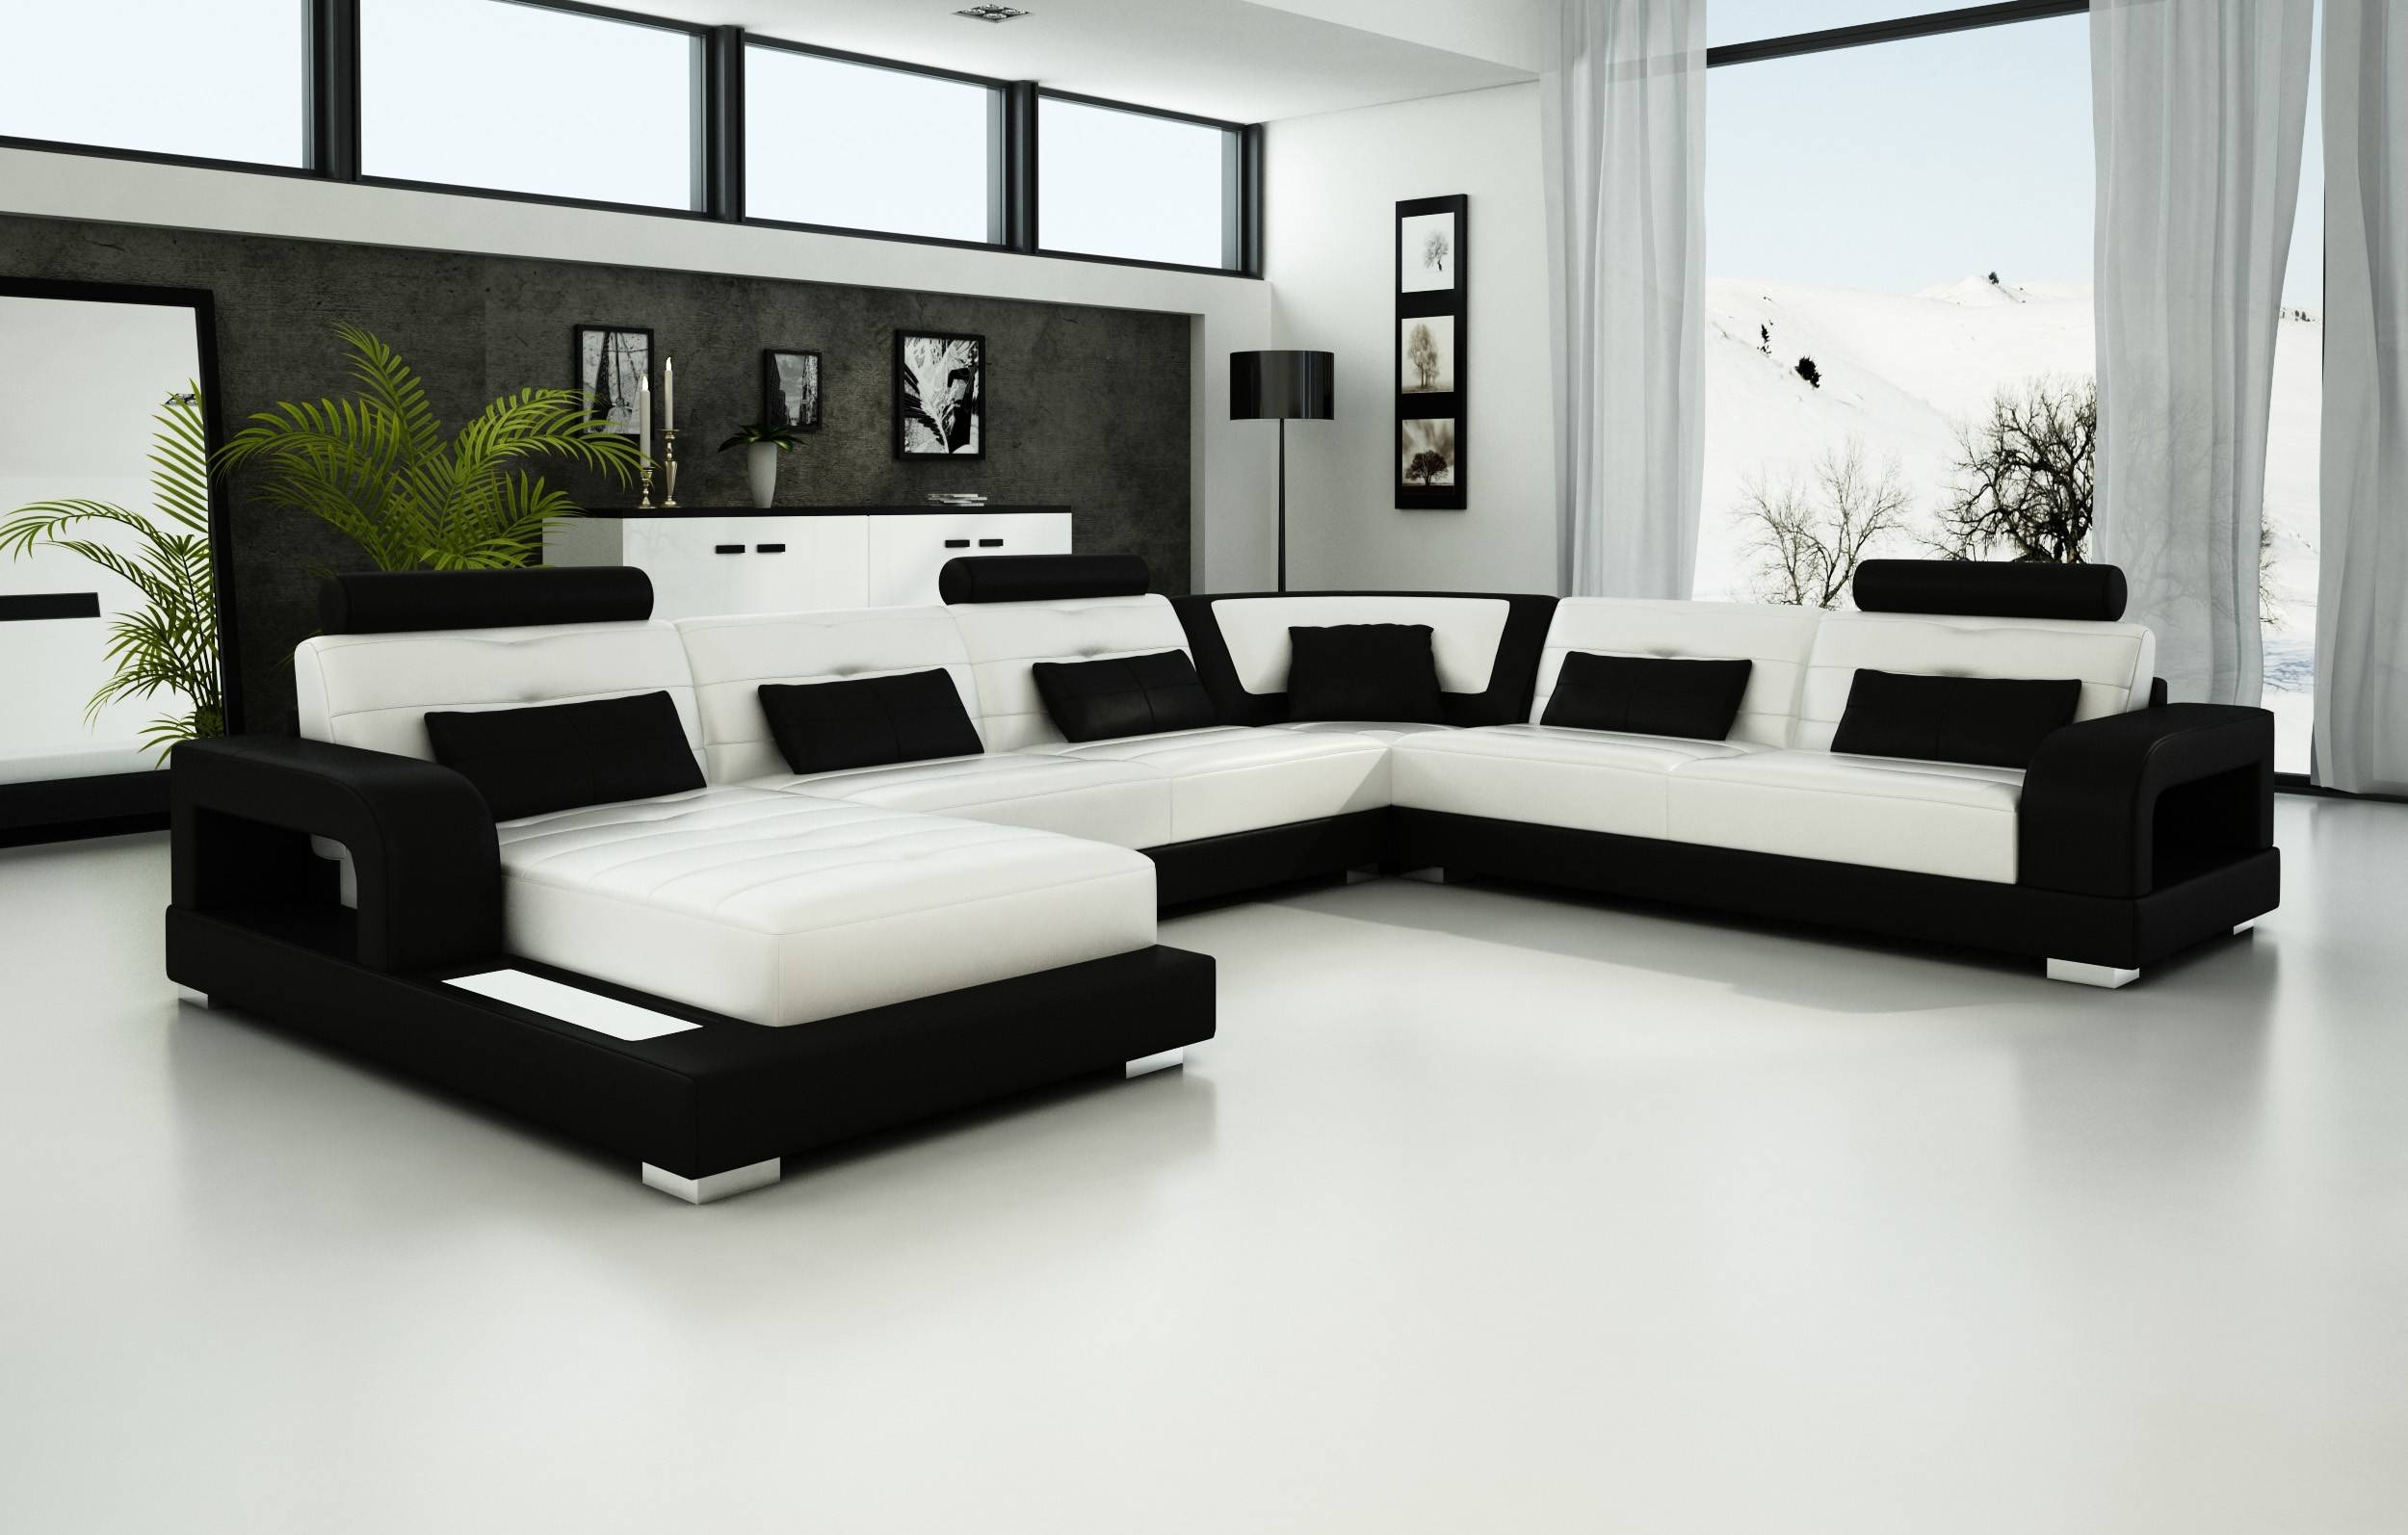 Bedroom : Leather Recliners Modular Sofa Living Room Tables Brown Pertaining To Black And White Sofas And Loveseats (View 4 of 15)